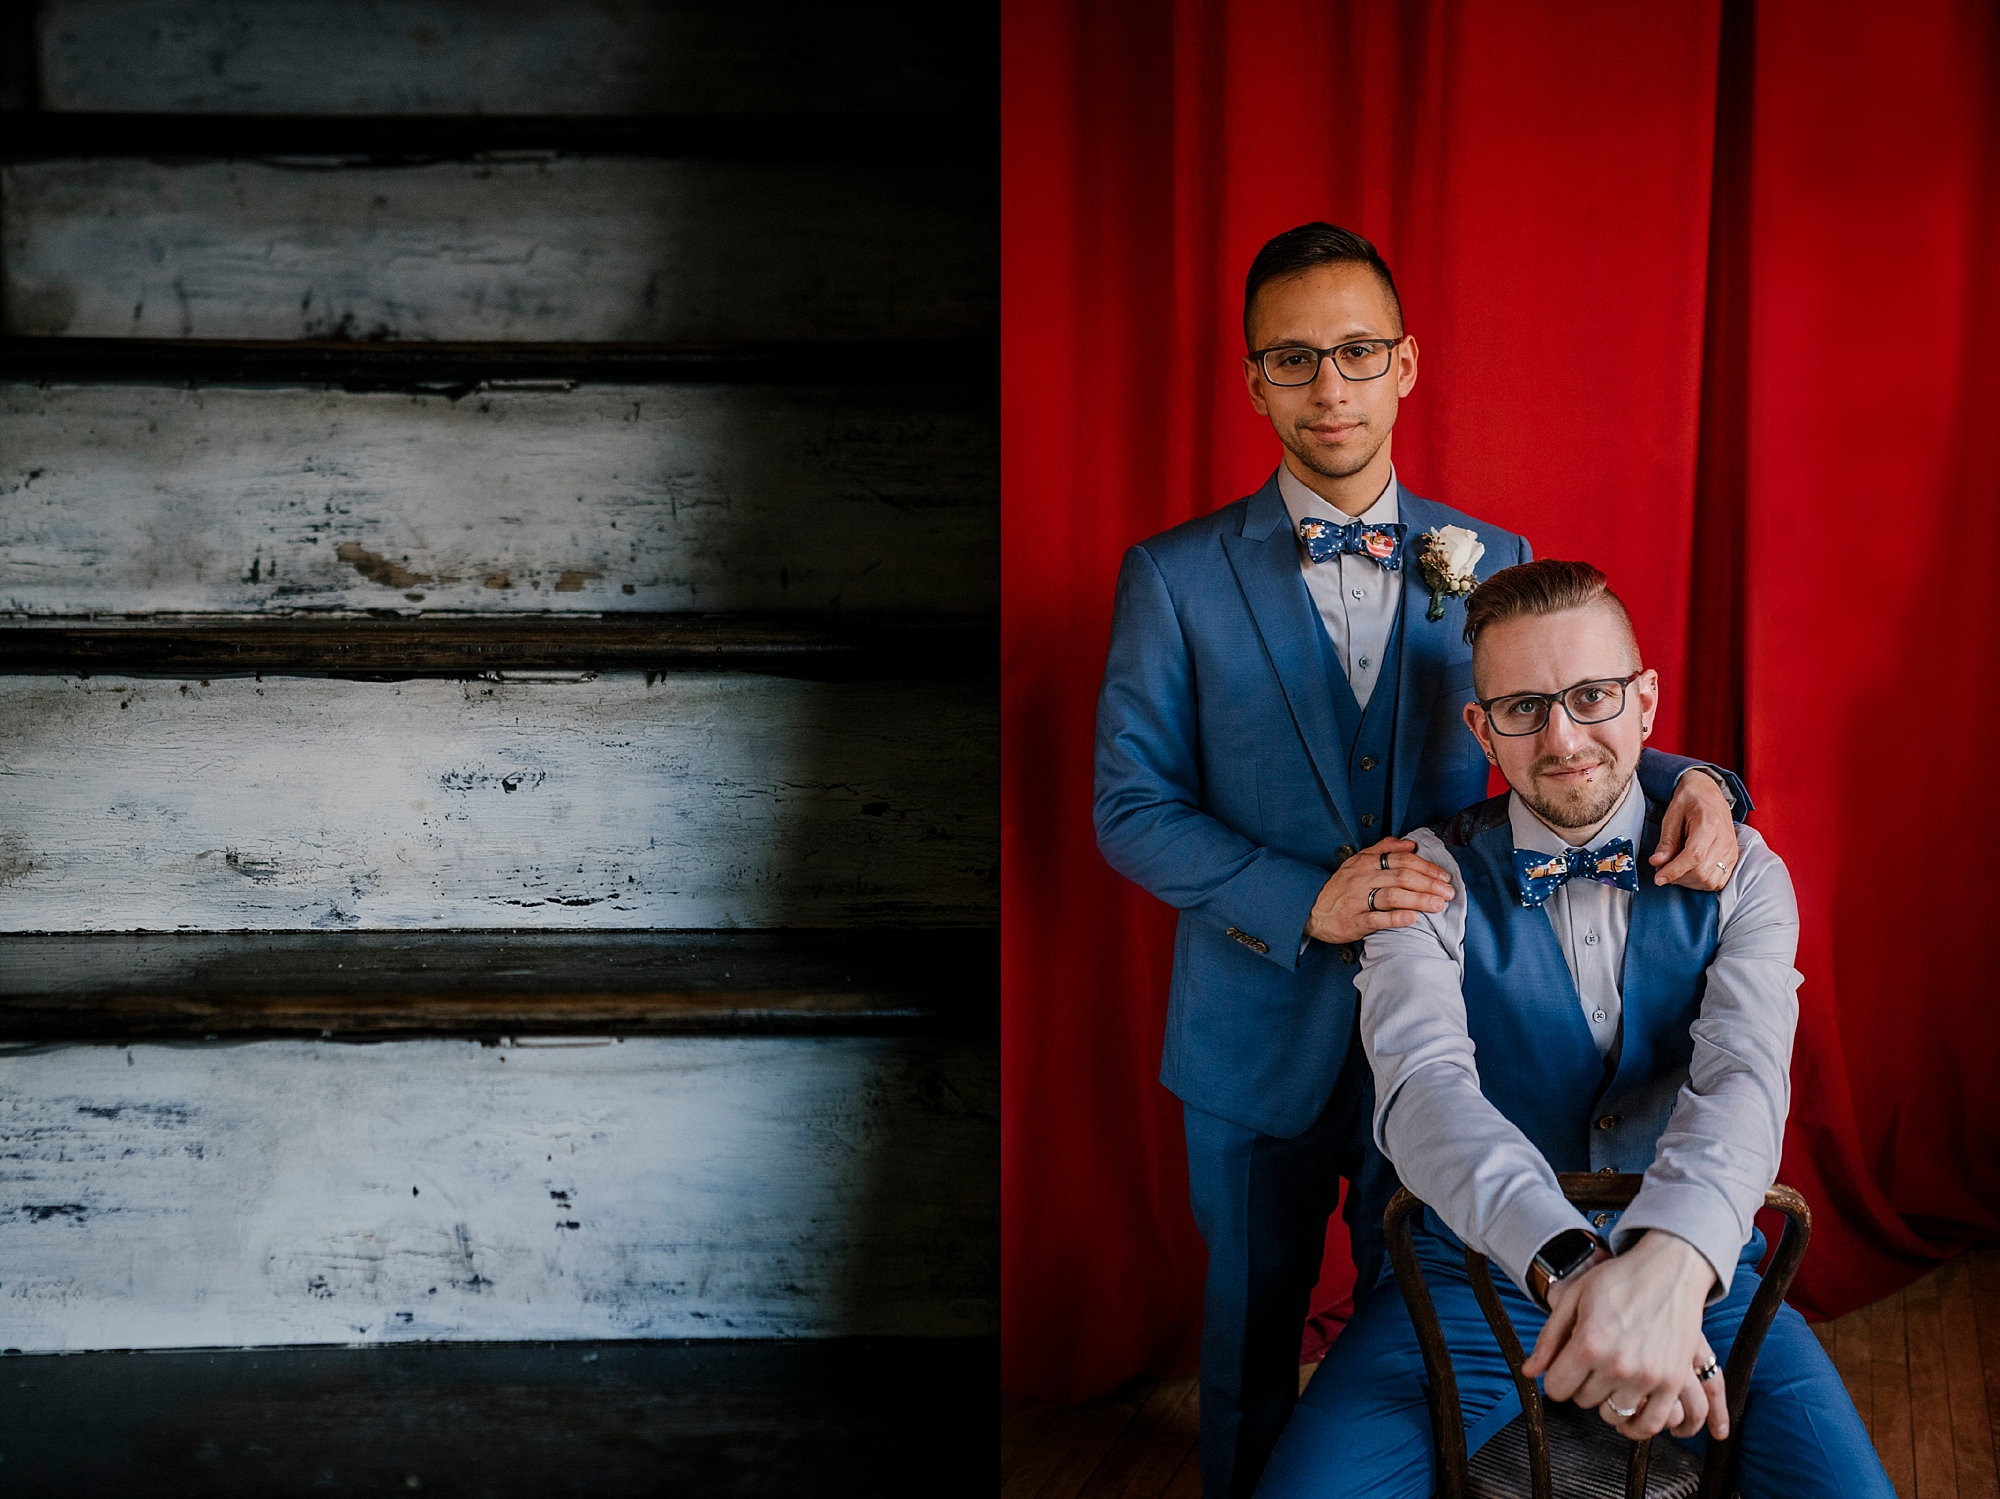 Joe_Mac_Creative_Philadelphia_Philly_LGBT_Gay_Engagement_Wedding_Photography__0144.jpg